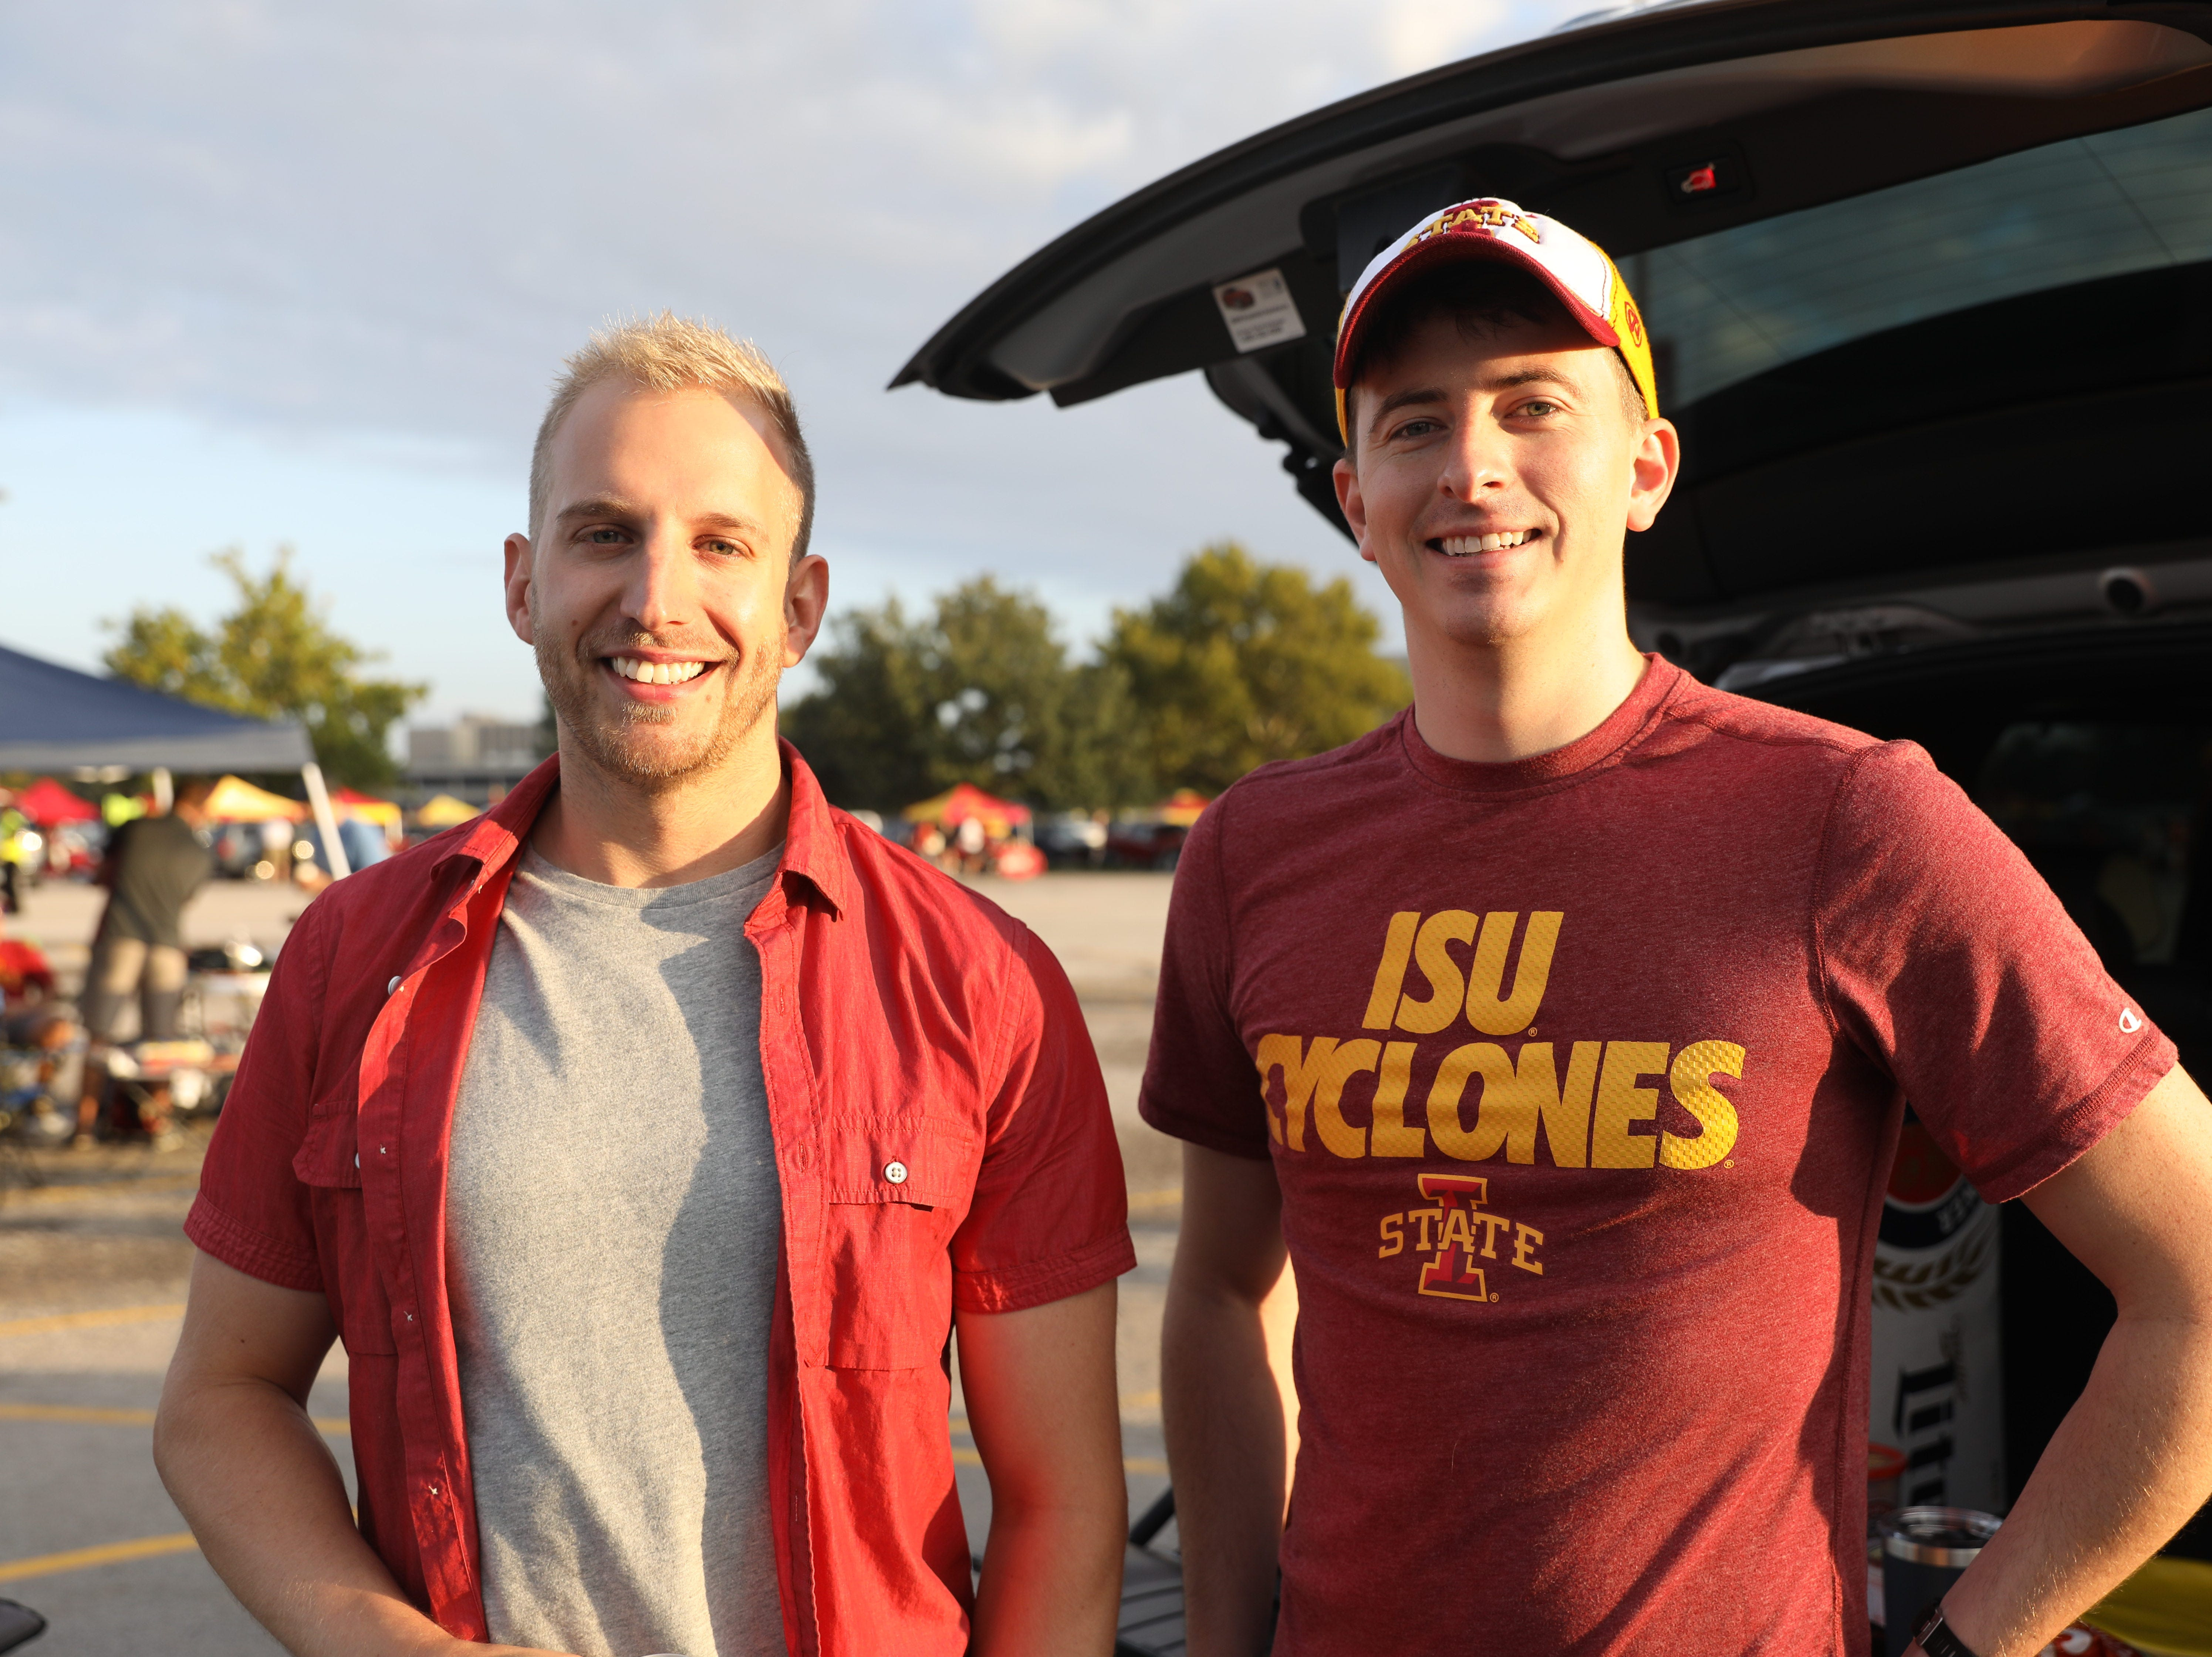 Grant Naschke, 27, (left) and Jim Carey, 27, both of Minneapolis, Saturday, Sept. 15, 2018, before the Iowa State football game against Oklahoma in Ames.